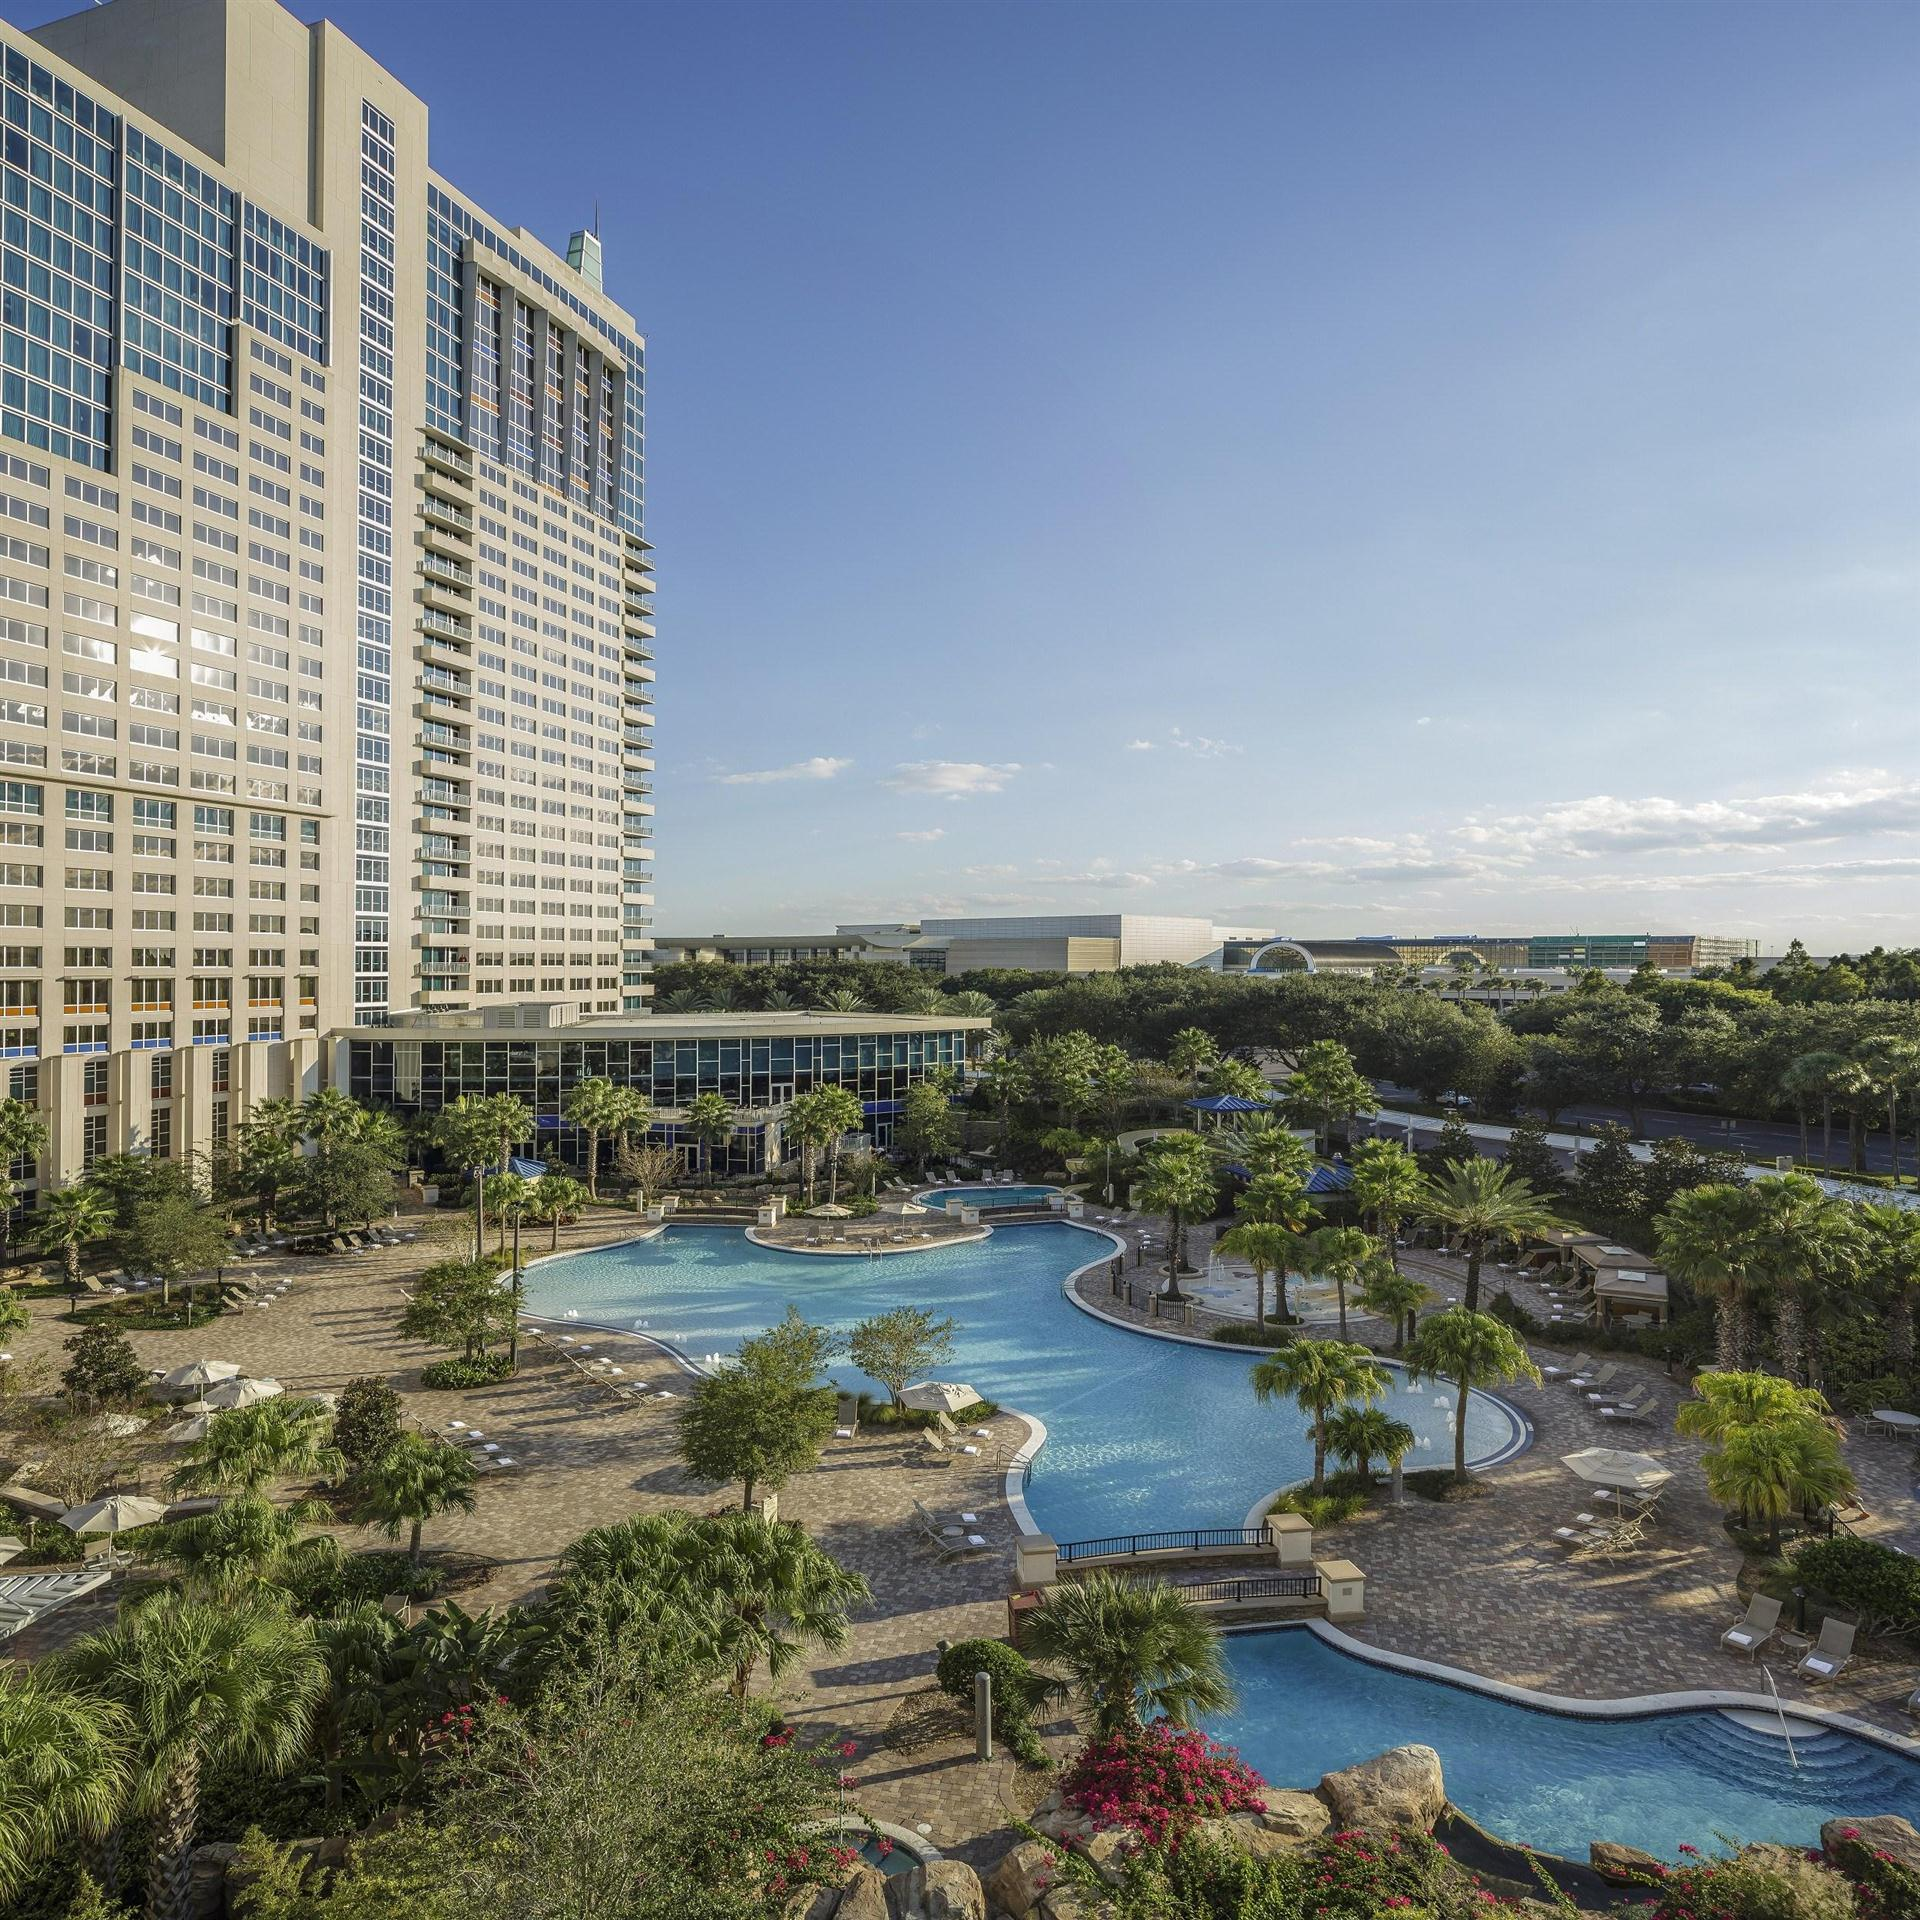 Meetings And Events At Hyatt Regency Orlando Fl Us Theater Structured Wiring Home Networking Central Florida Hotel